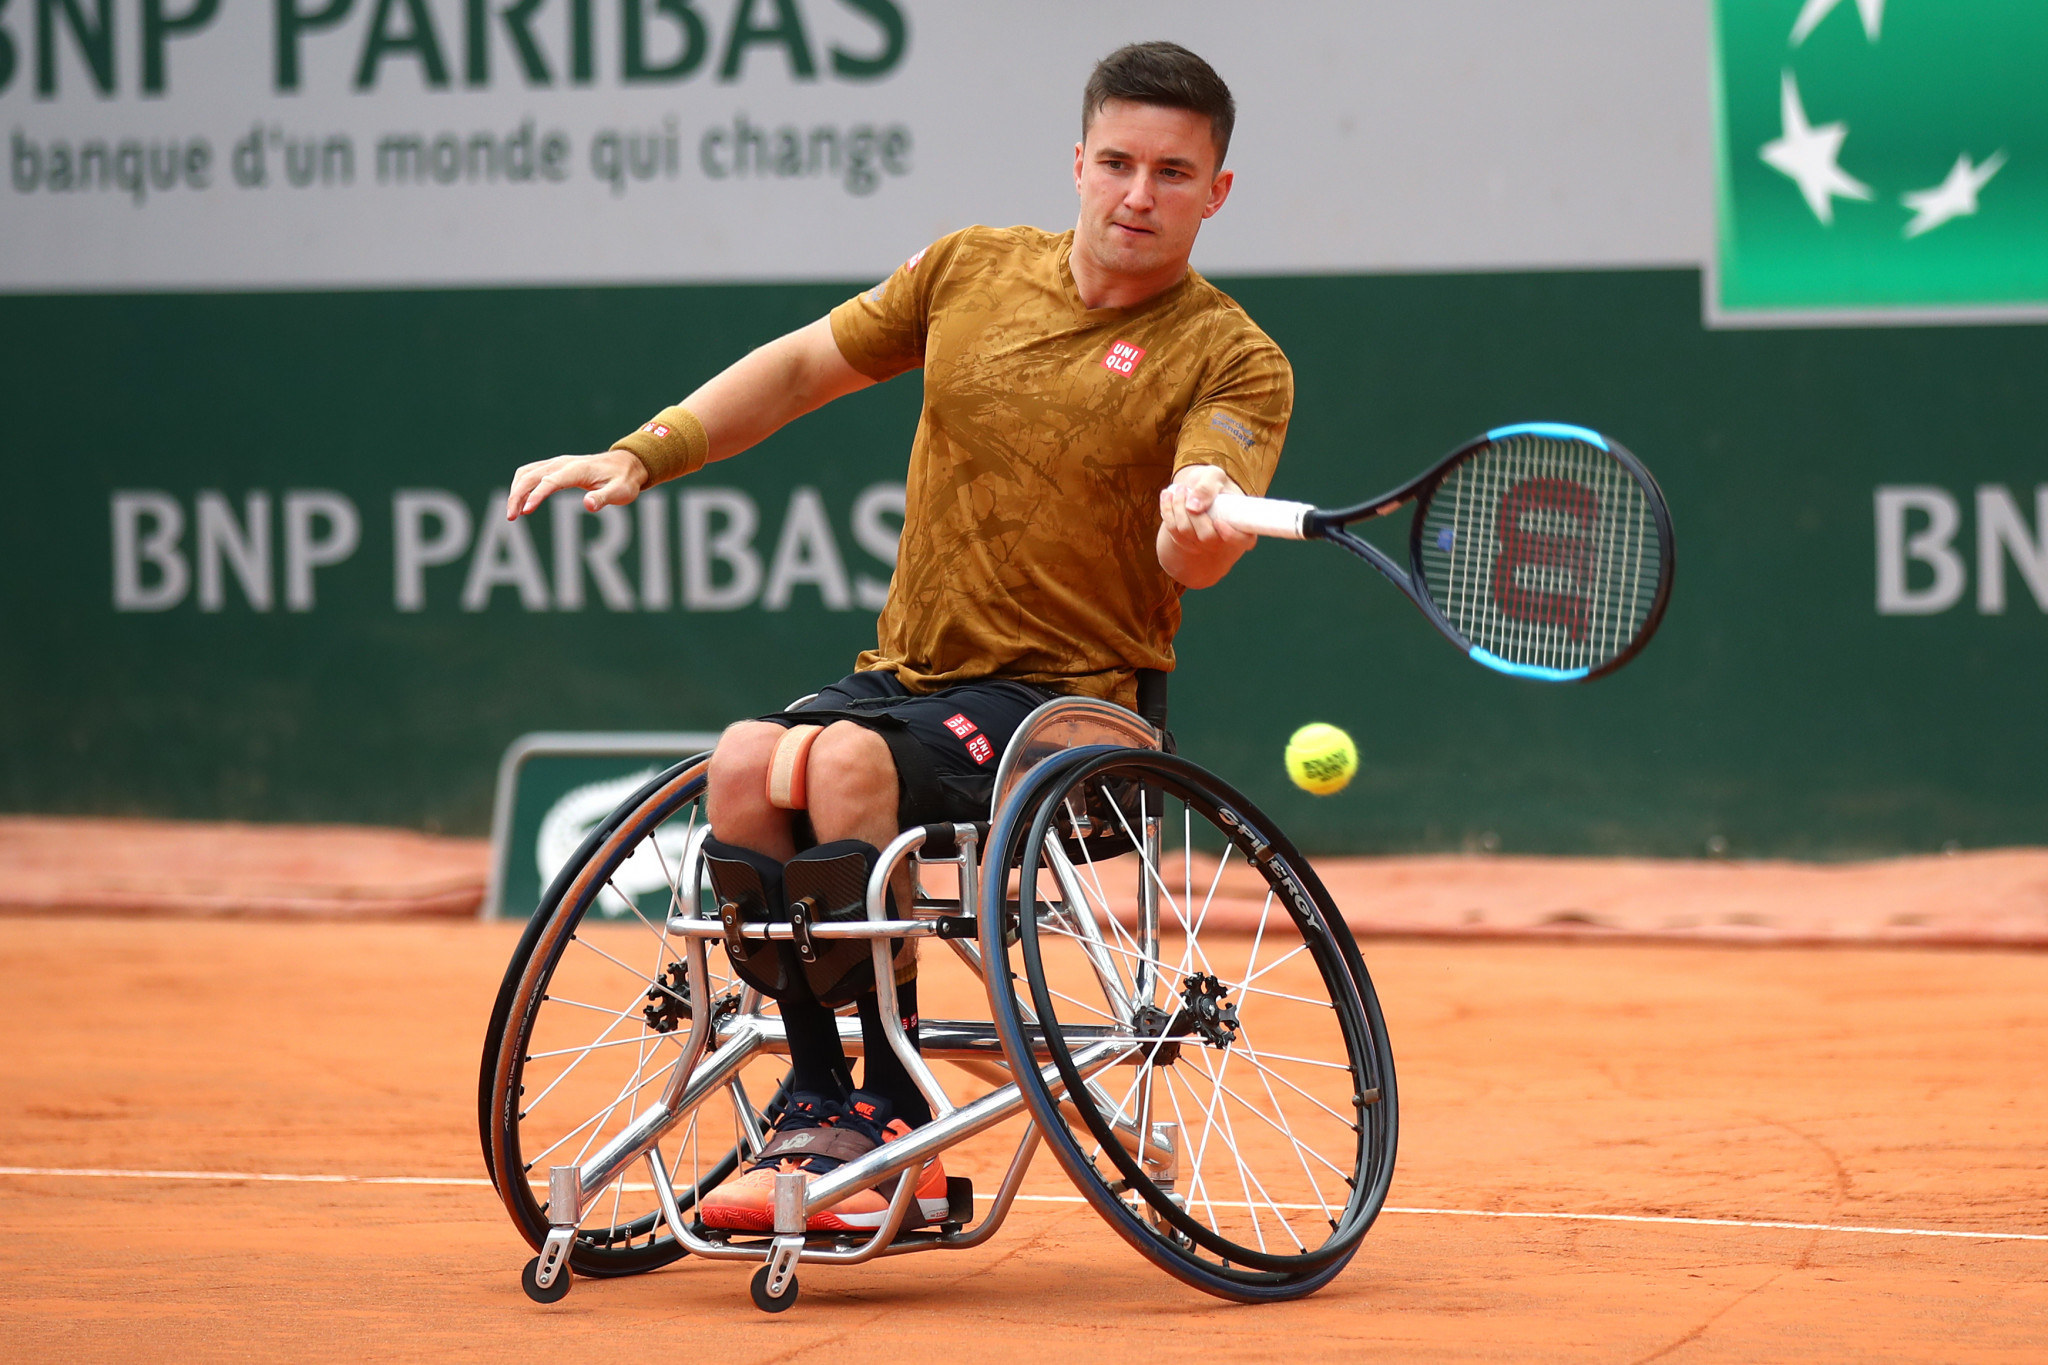 Reid ousts third seed Houdet to reach semi-finals at BNP Paribas Open de France